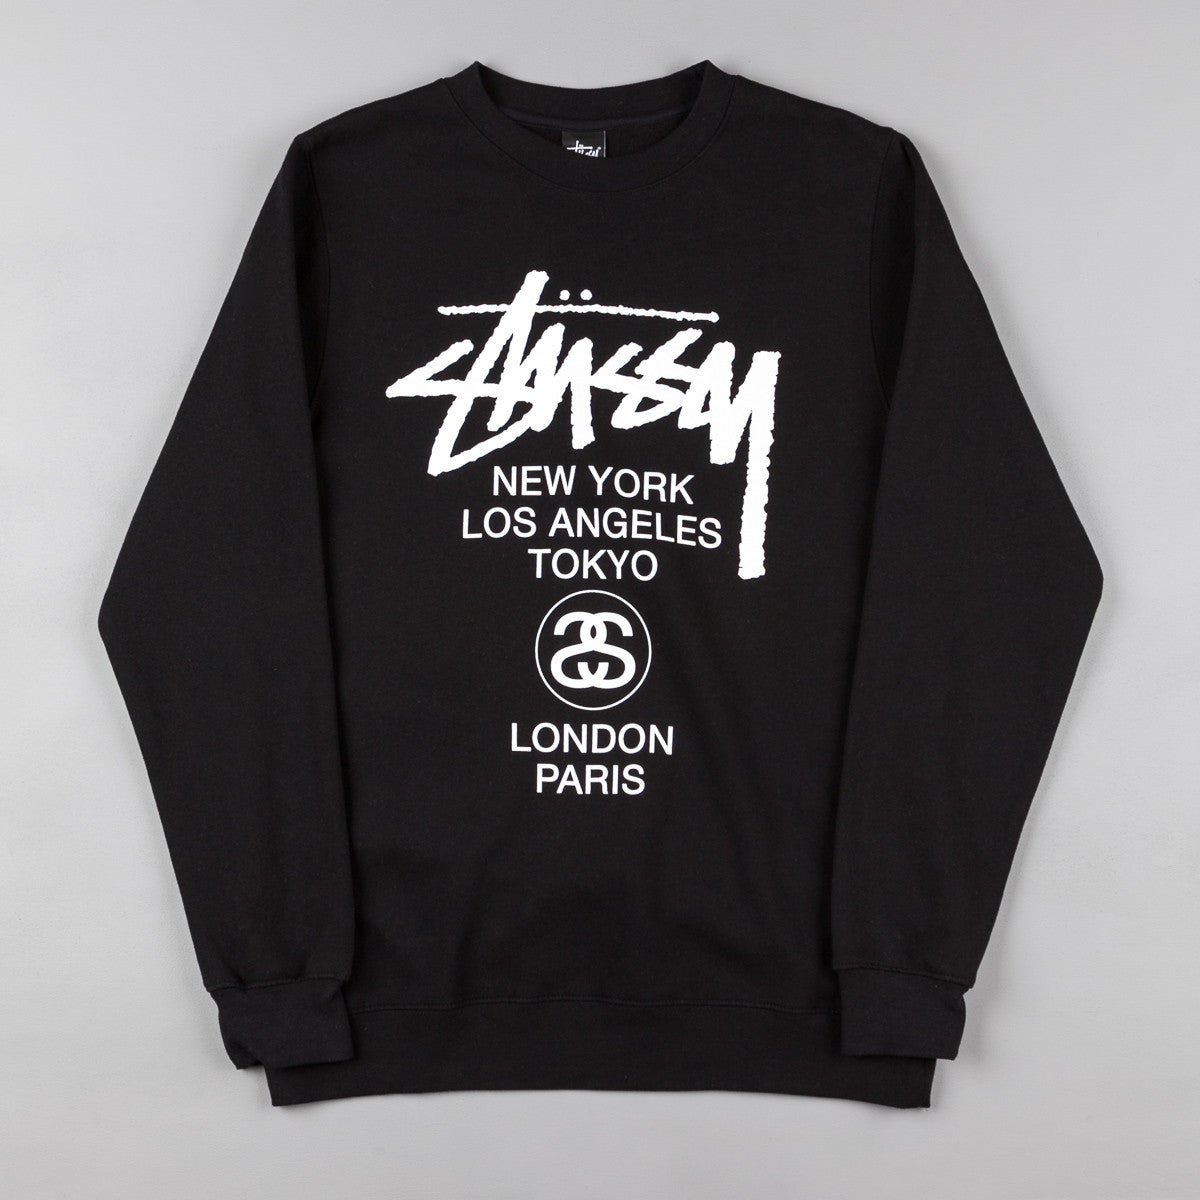 Stussy World Tour Crew Neck Sweatshirt - Black